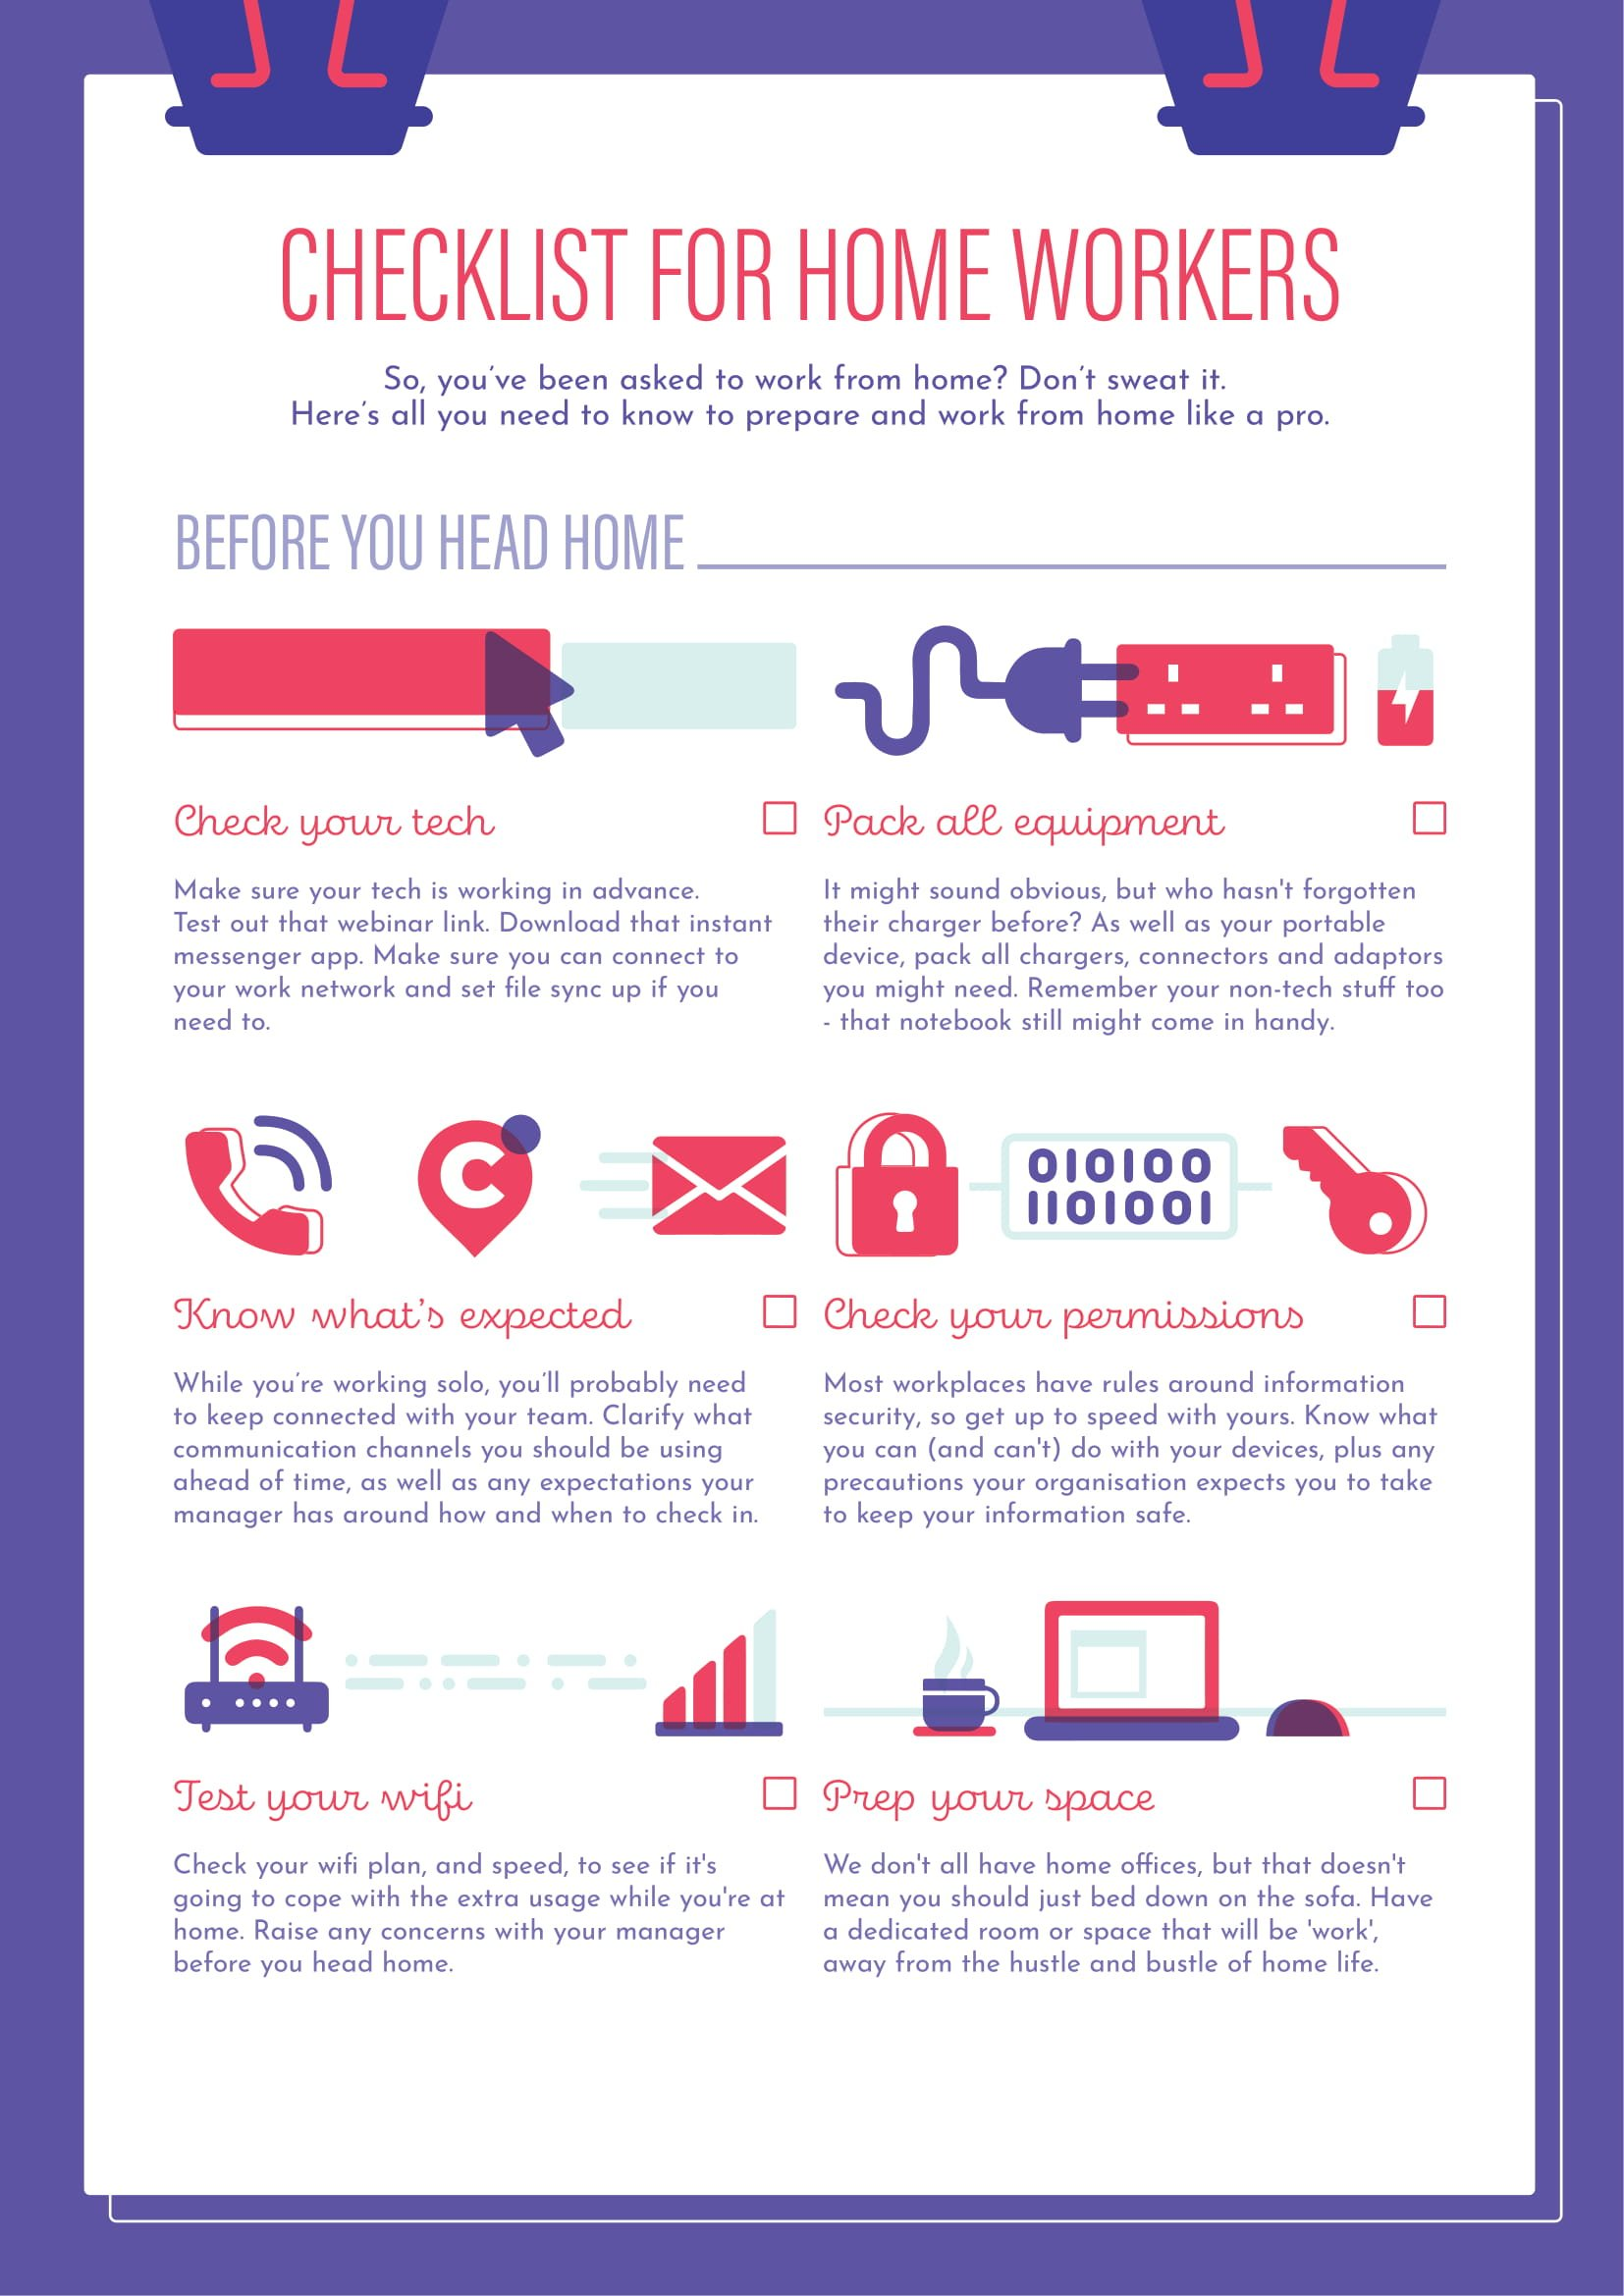 Checklist for Home Workers Info graphic